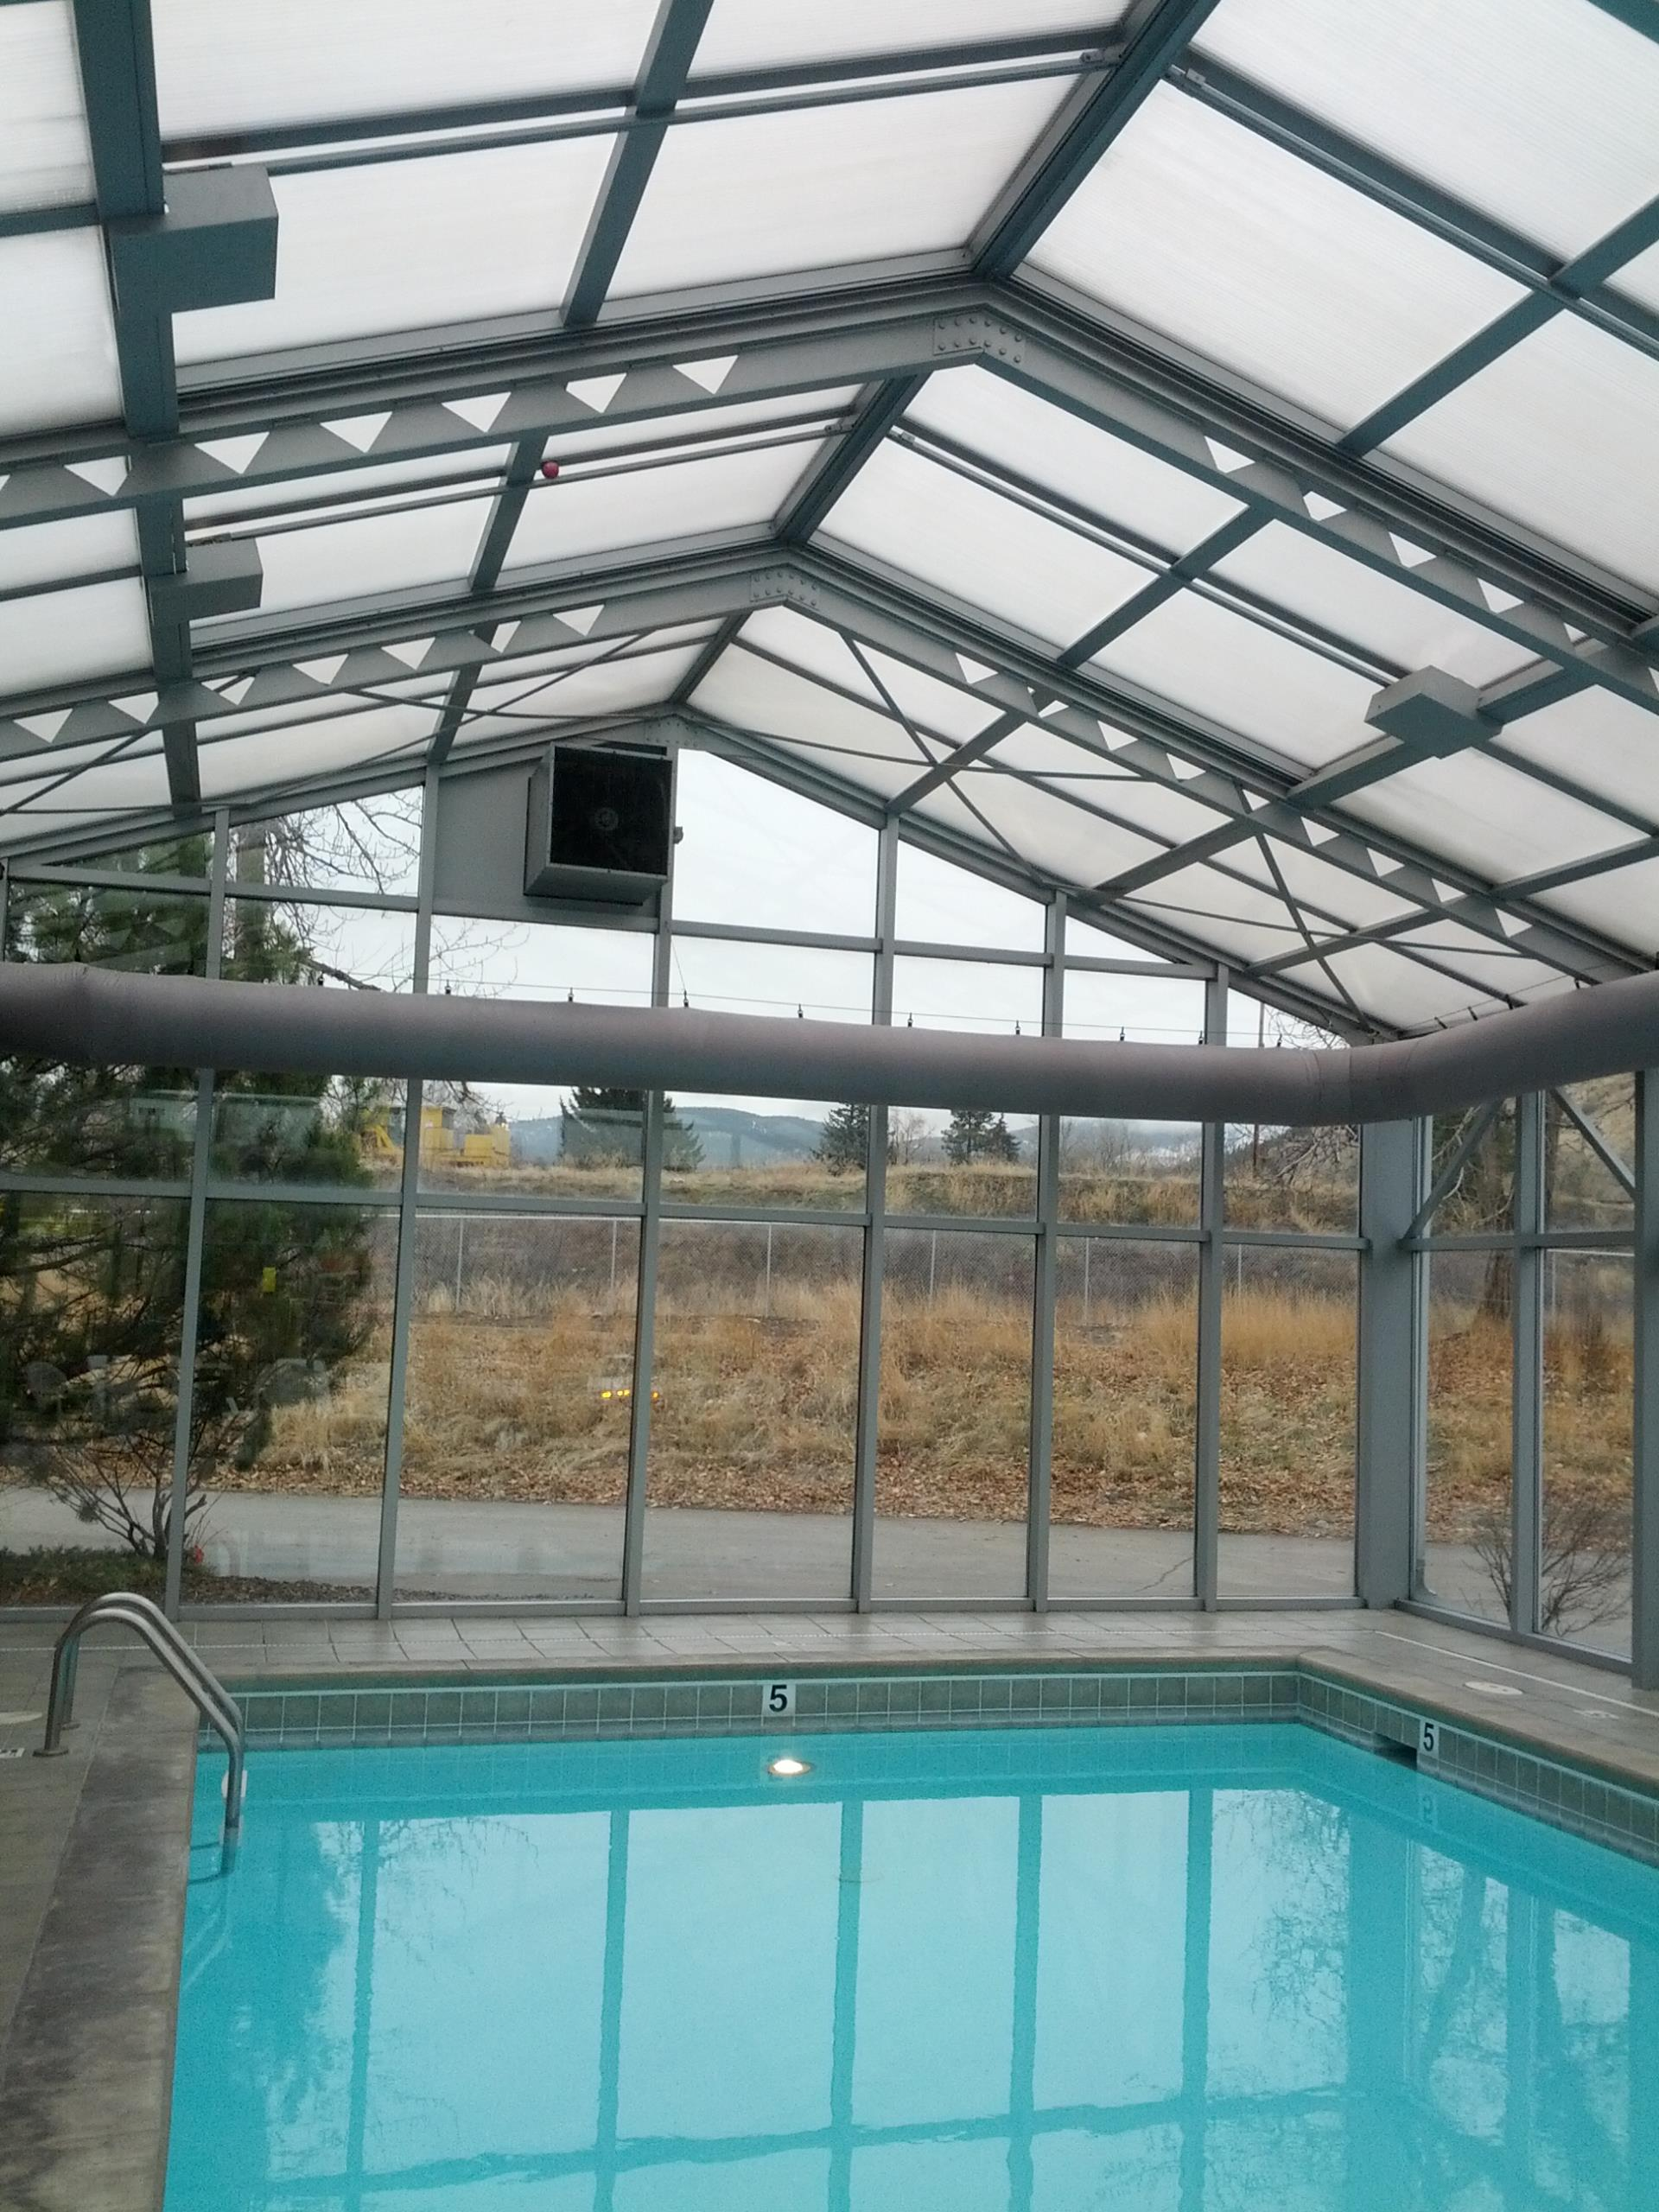 Pool within Missoula County that was up for an inspection.